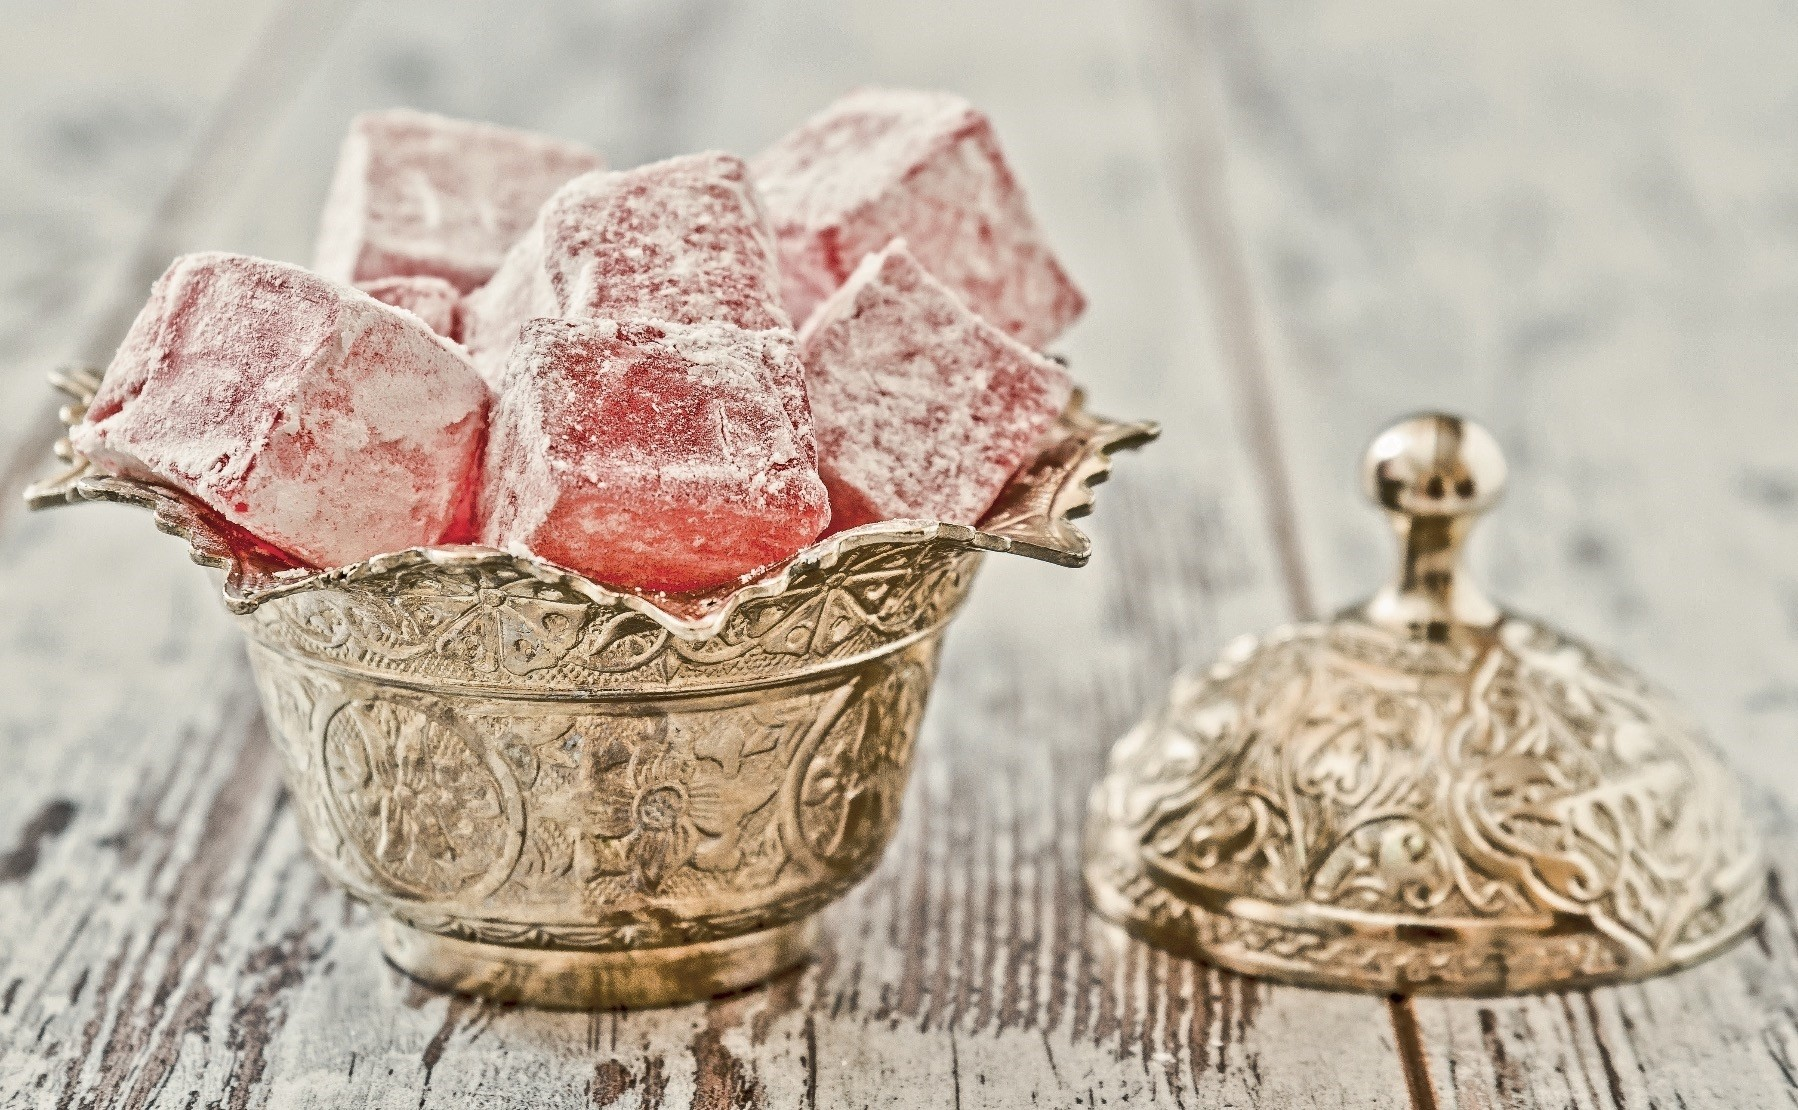 Turkish delight was first eaten in the 18th century.